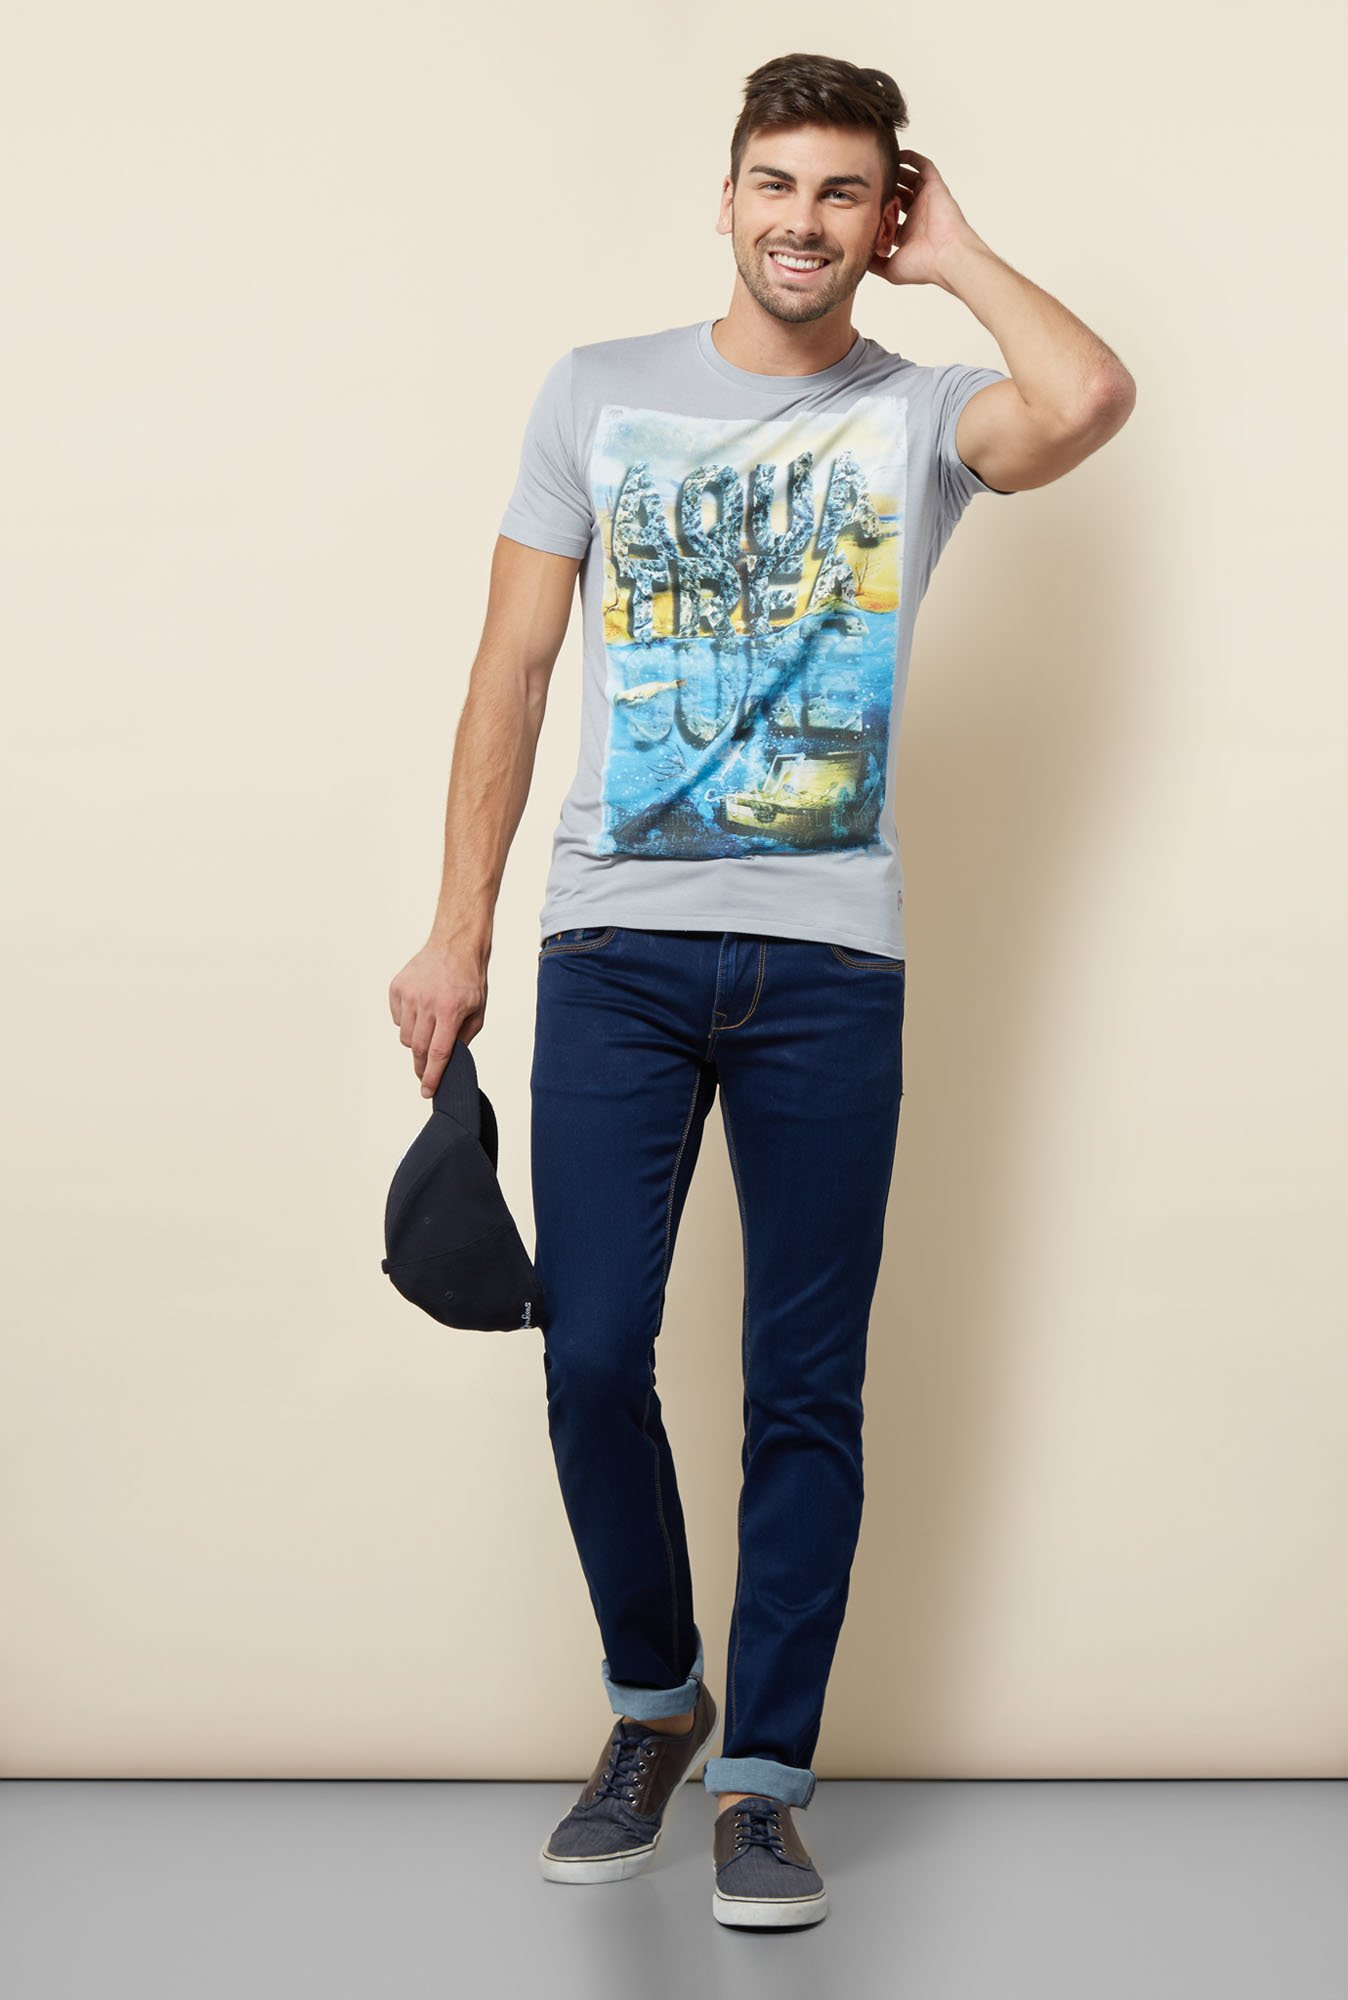 Lawman Grey Printed T shirt